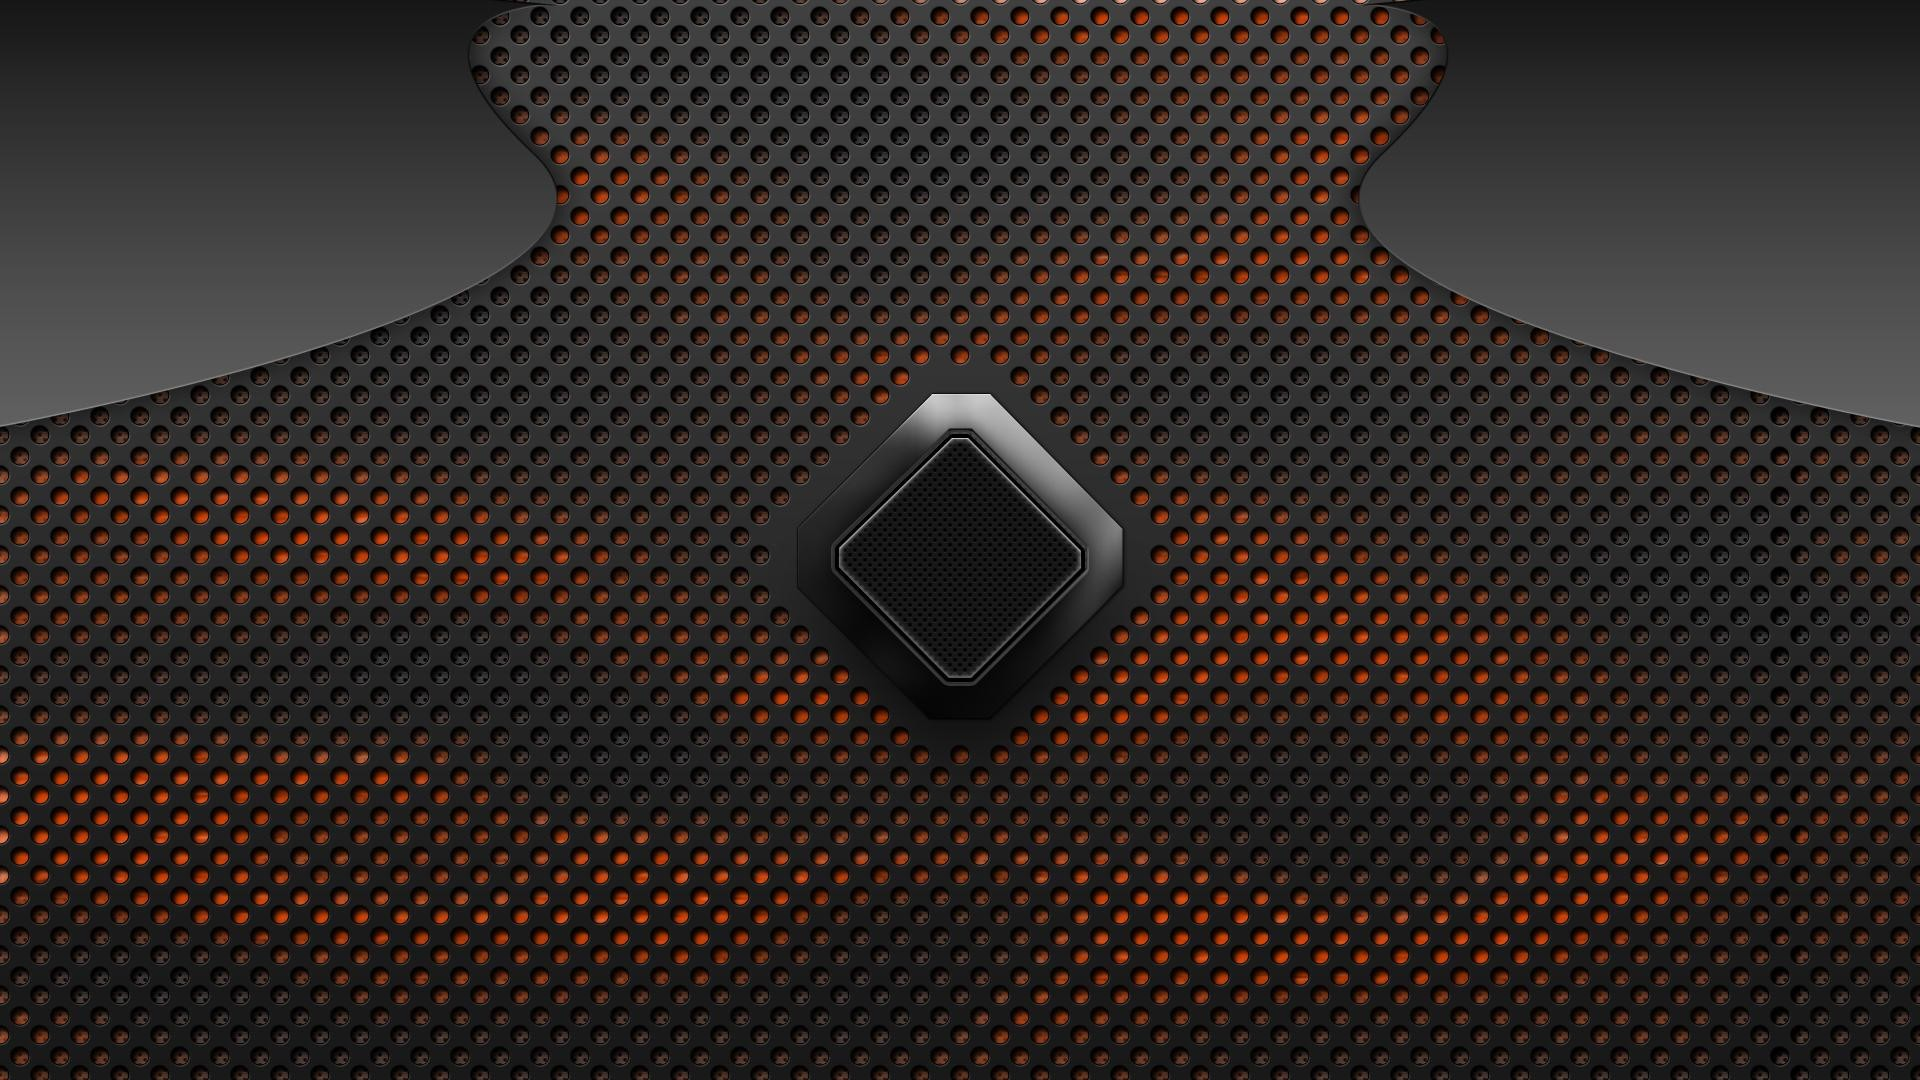 Carbon-fiber-hd-background-wallpapers